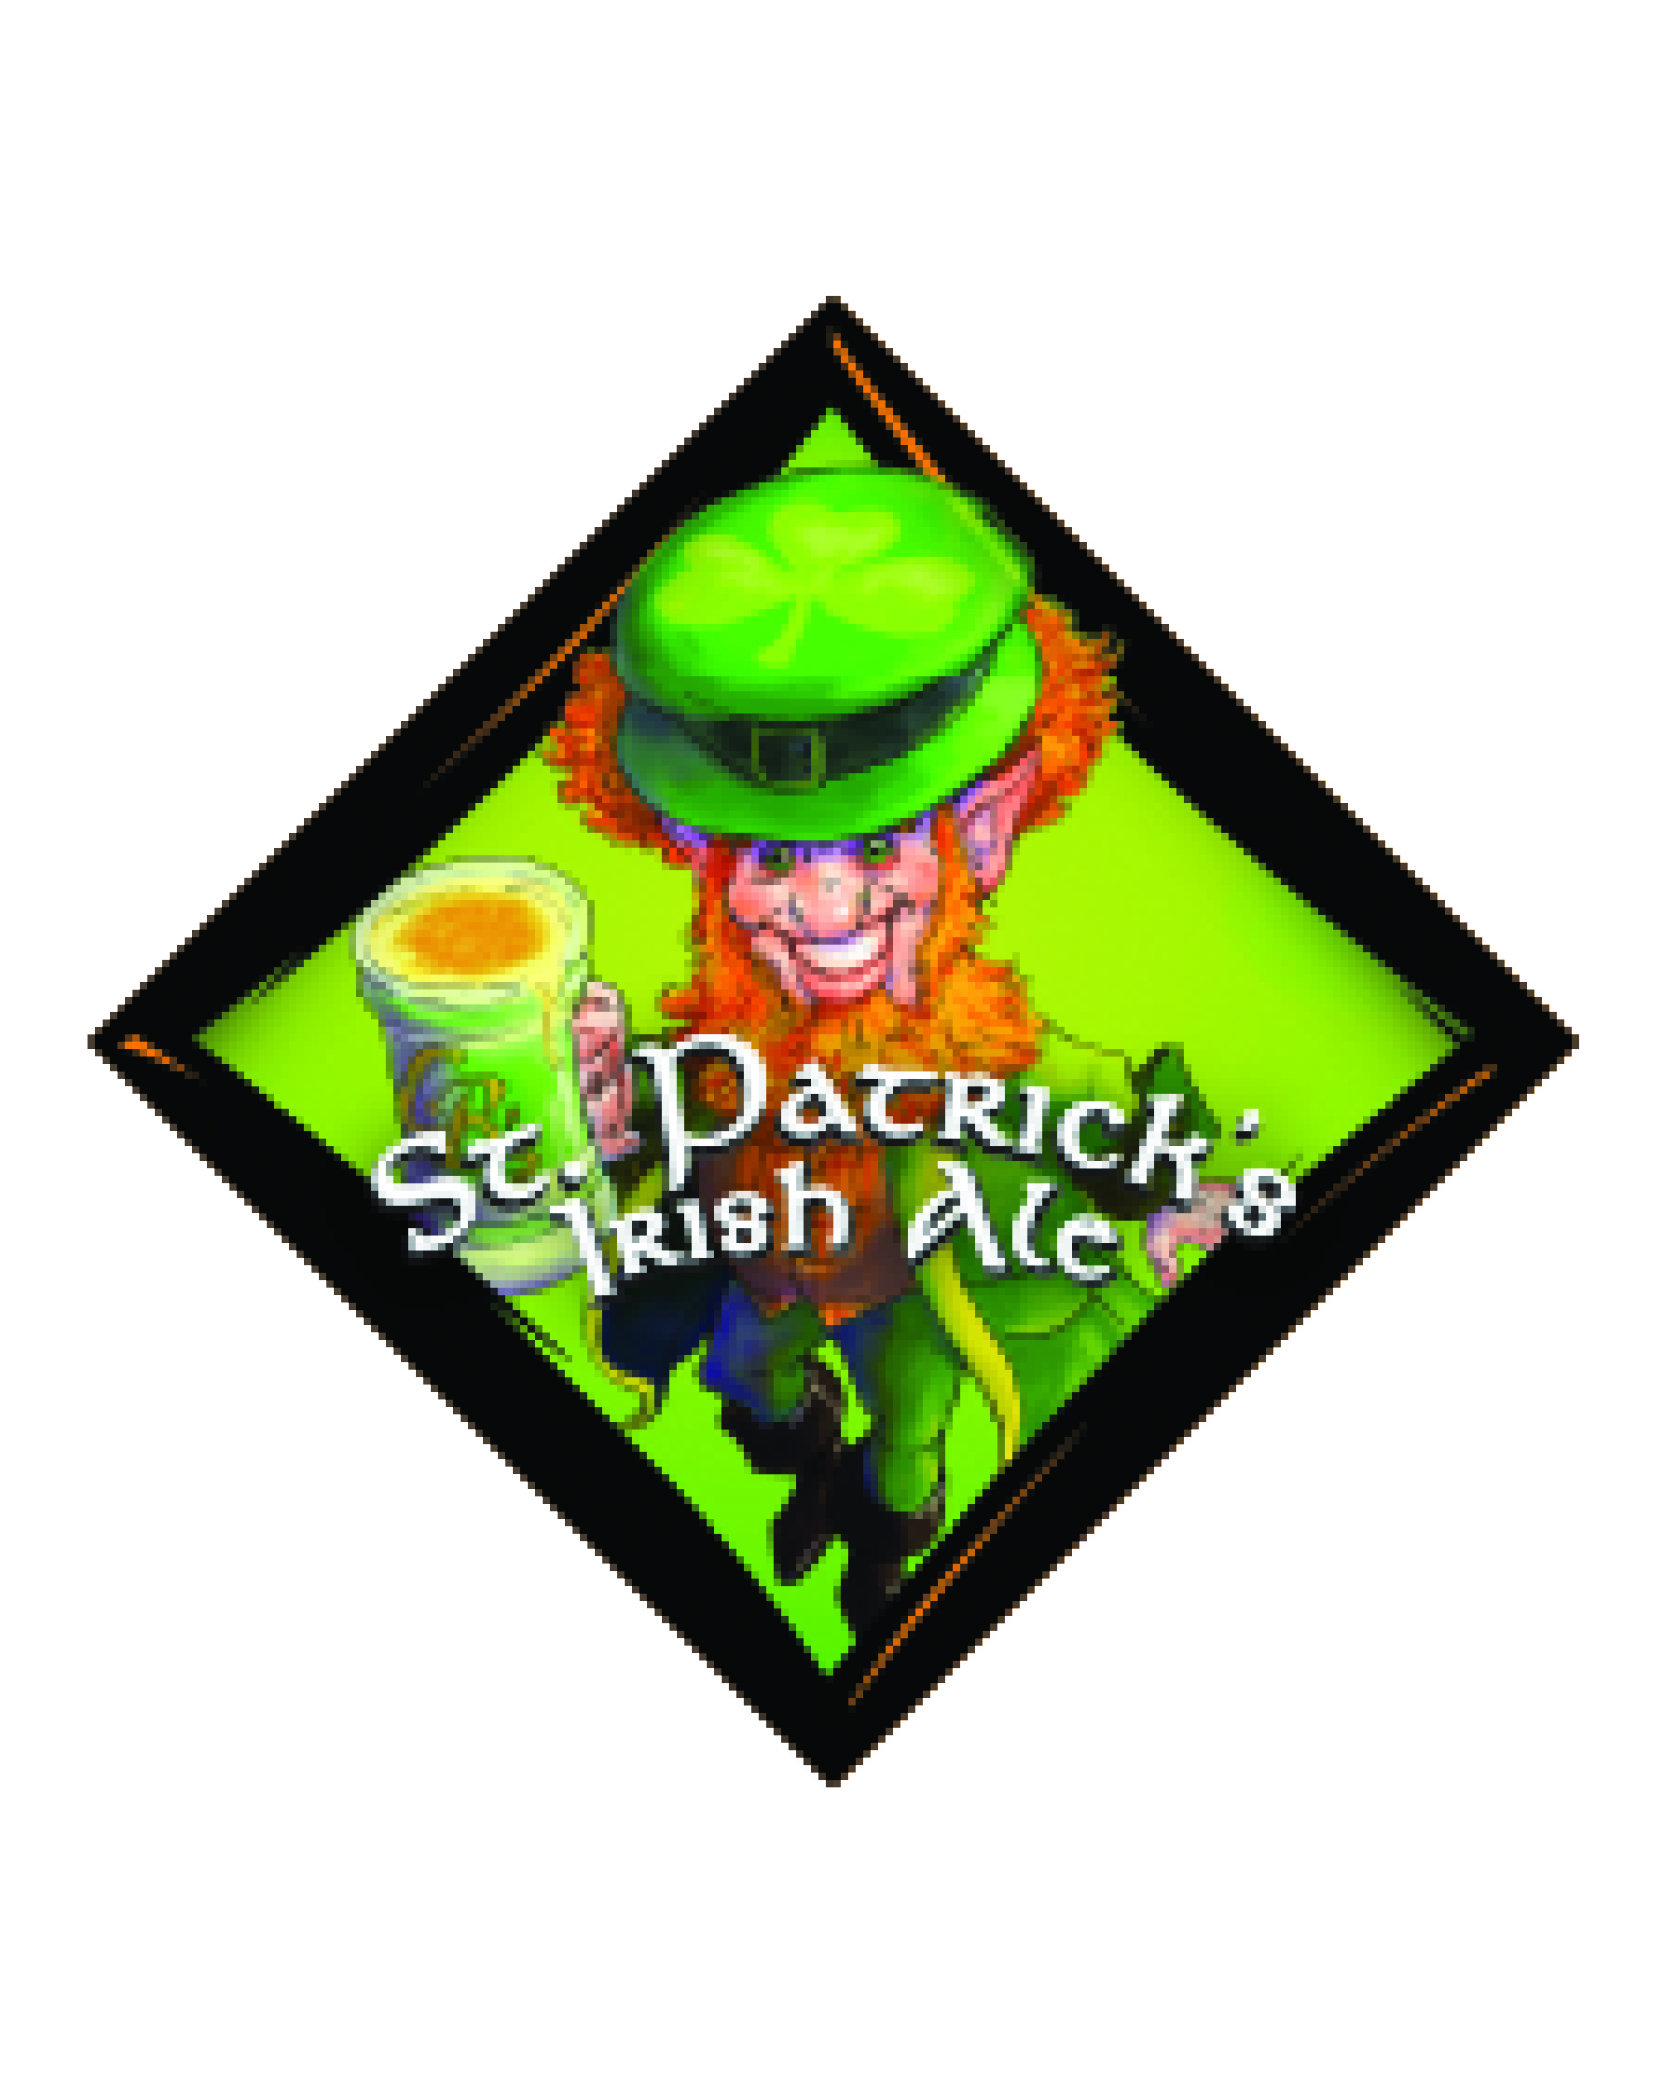 Craft Brewers St. Patrick's Irish Ale